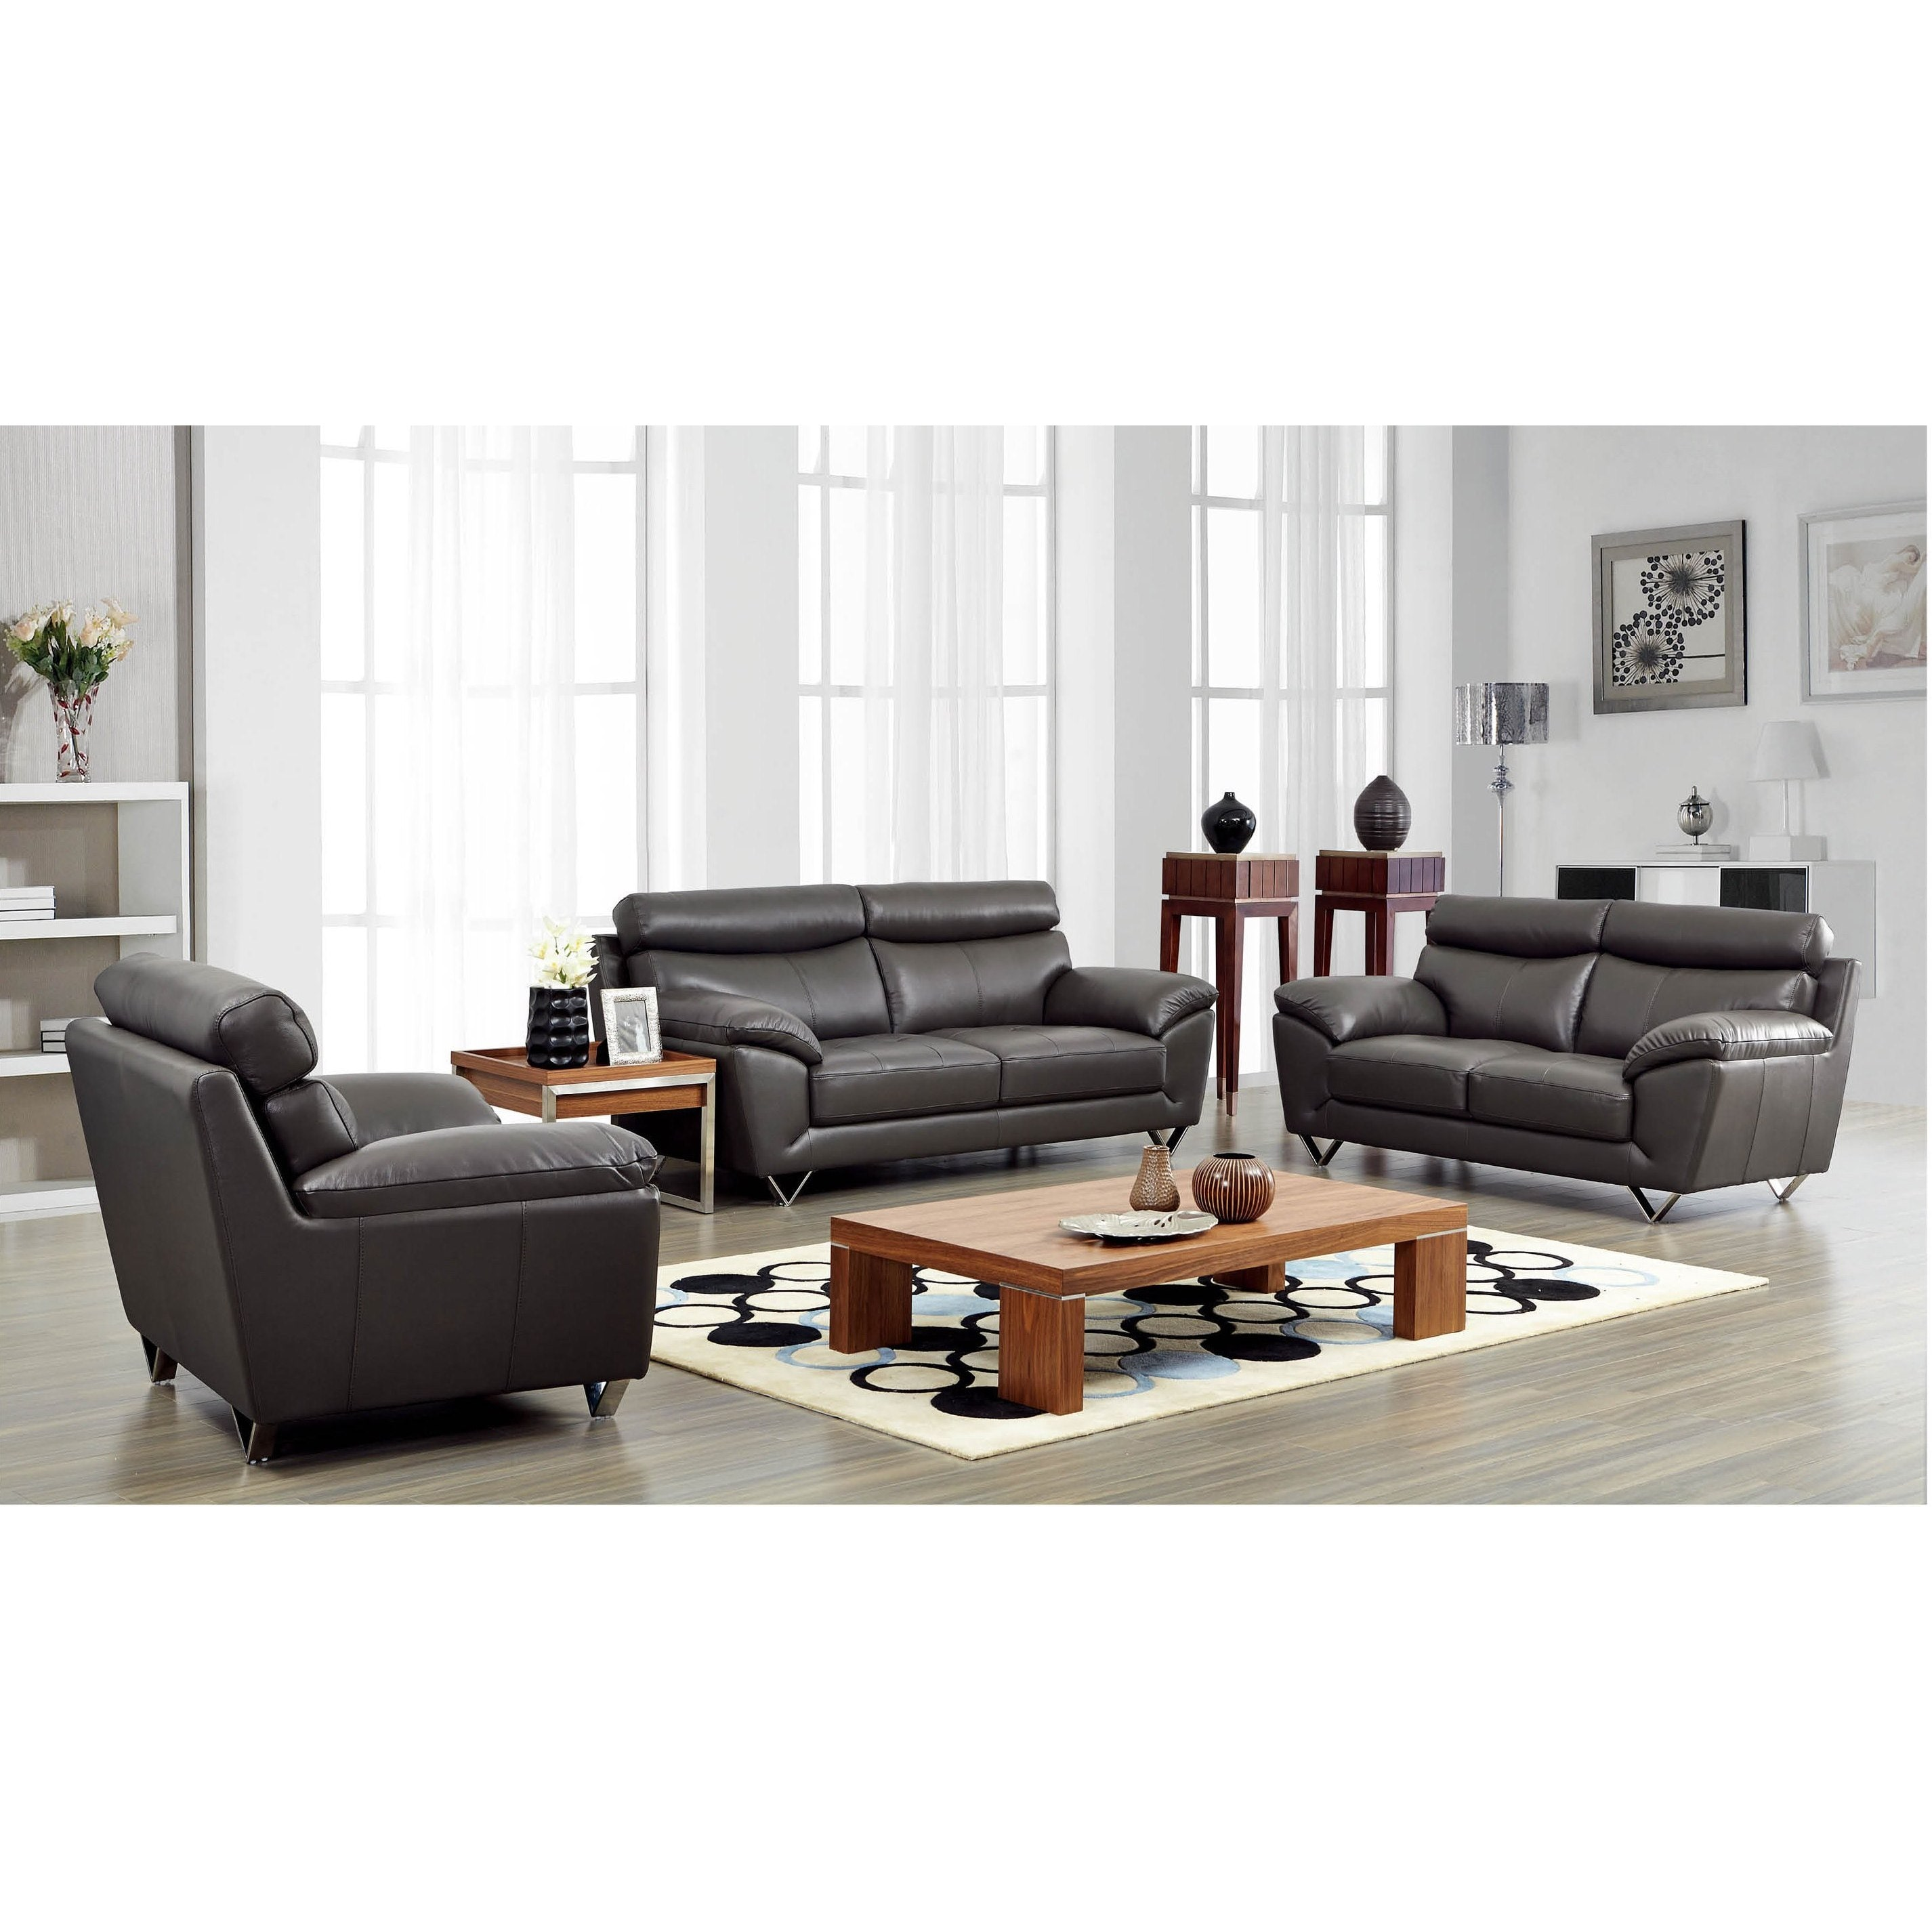 Luca Home  Grey Leather Match Sofa, Loveseat and Chair Set